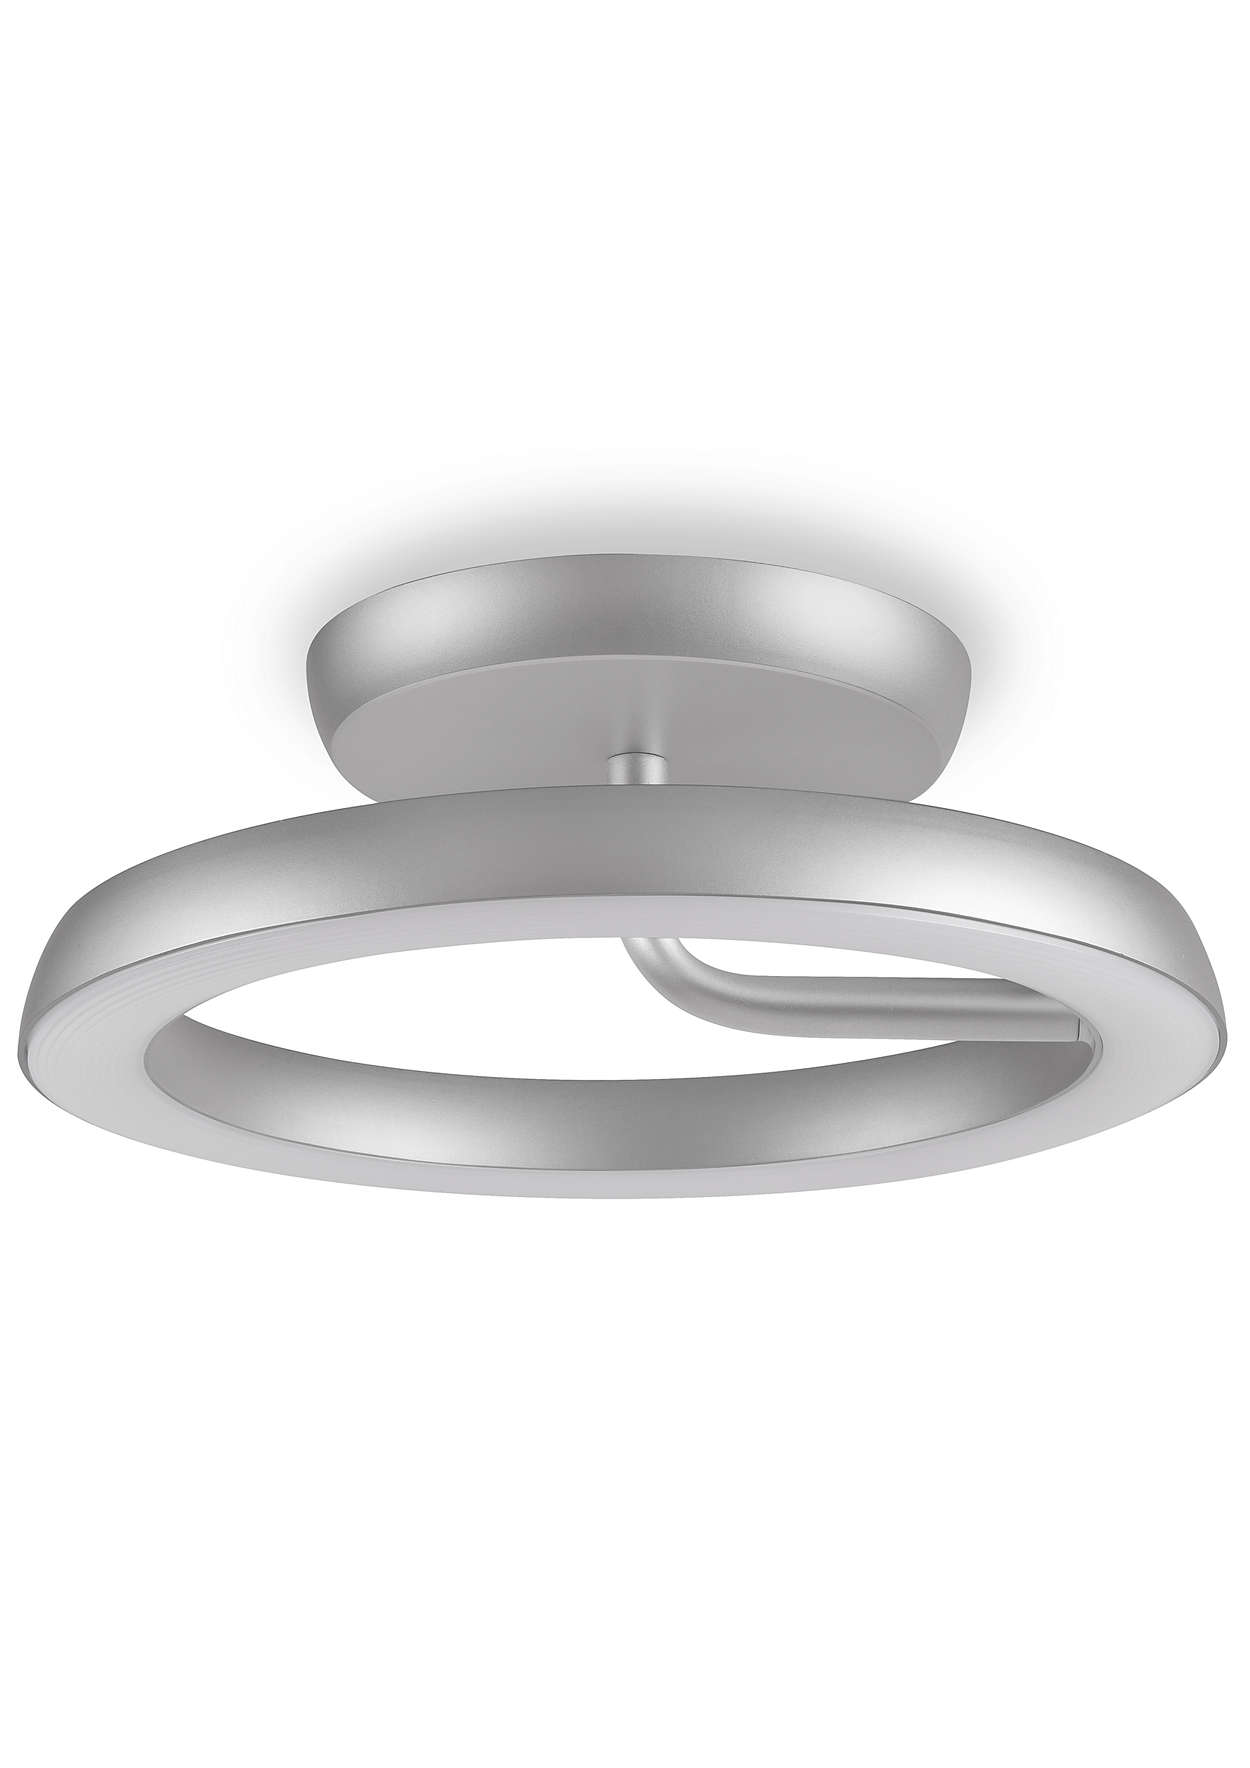 lampefeber lighting modern grupaproducts ceiling light and lights loftlampe products design stylish baluna with